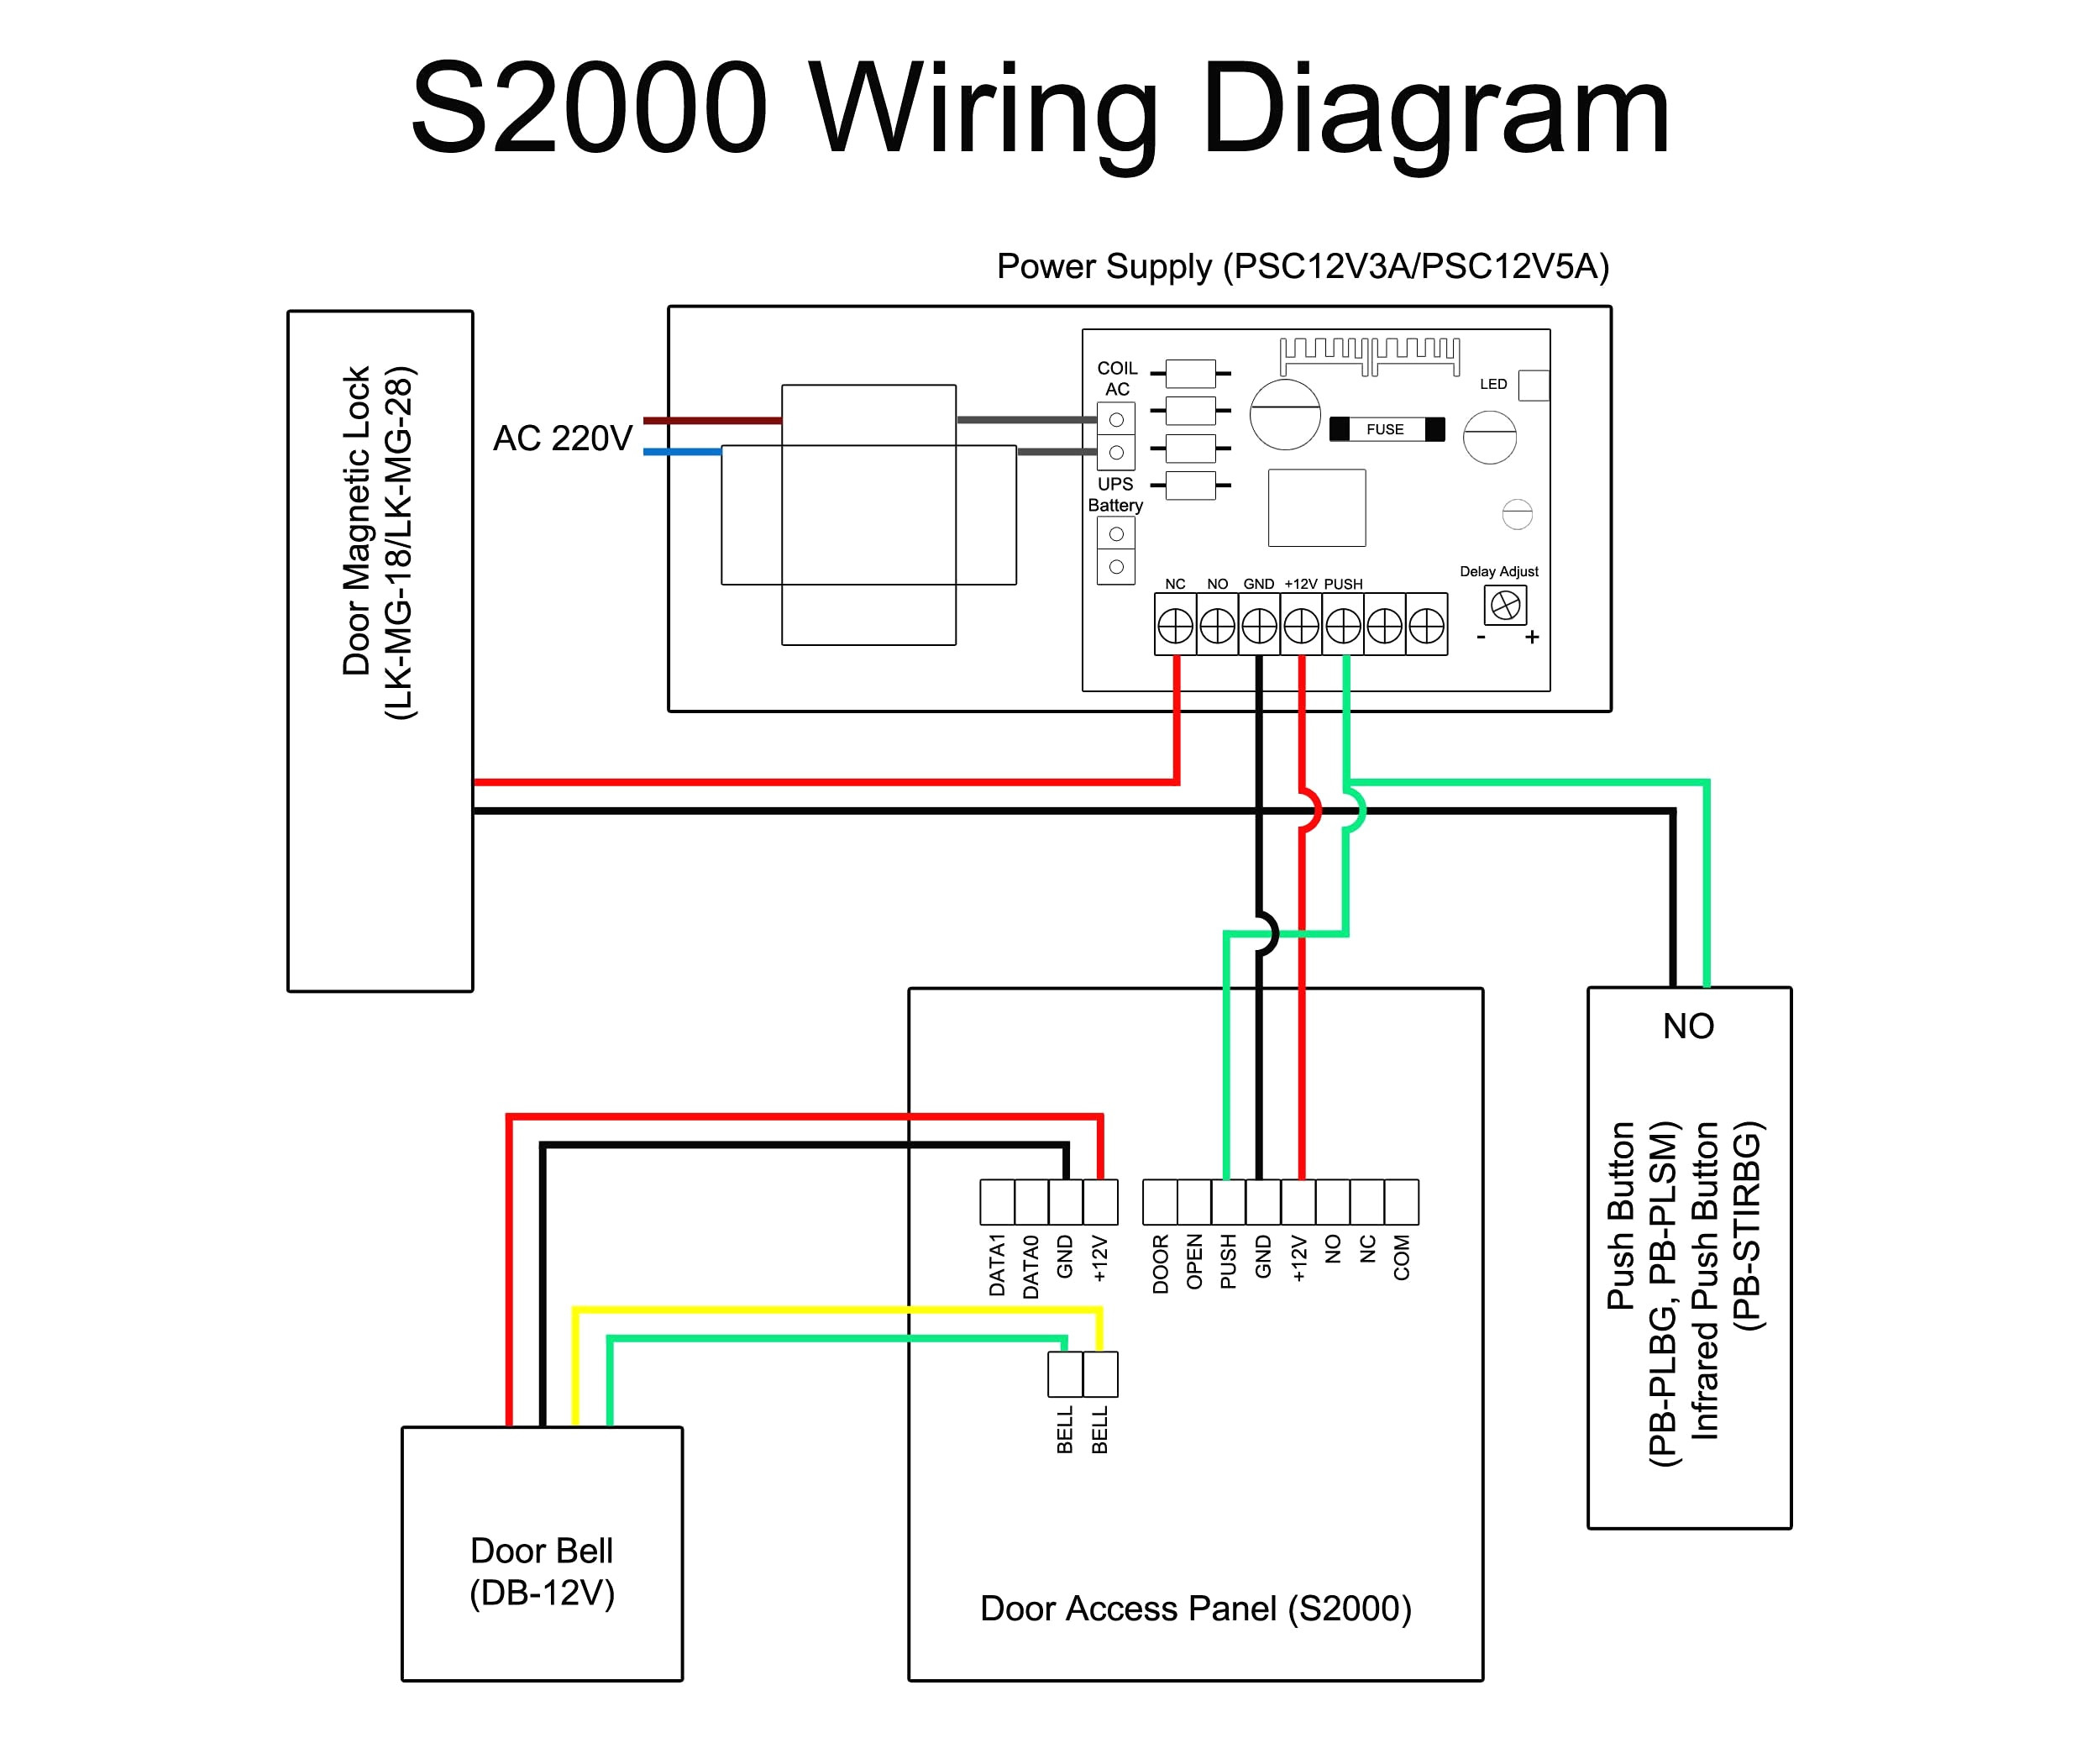 control wiring diagram of apfc panel simple trailer light star delta starter pdf best library also access diagrams door rh 1 hvacgroup eu